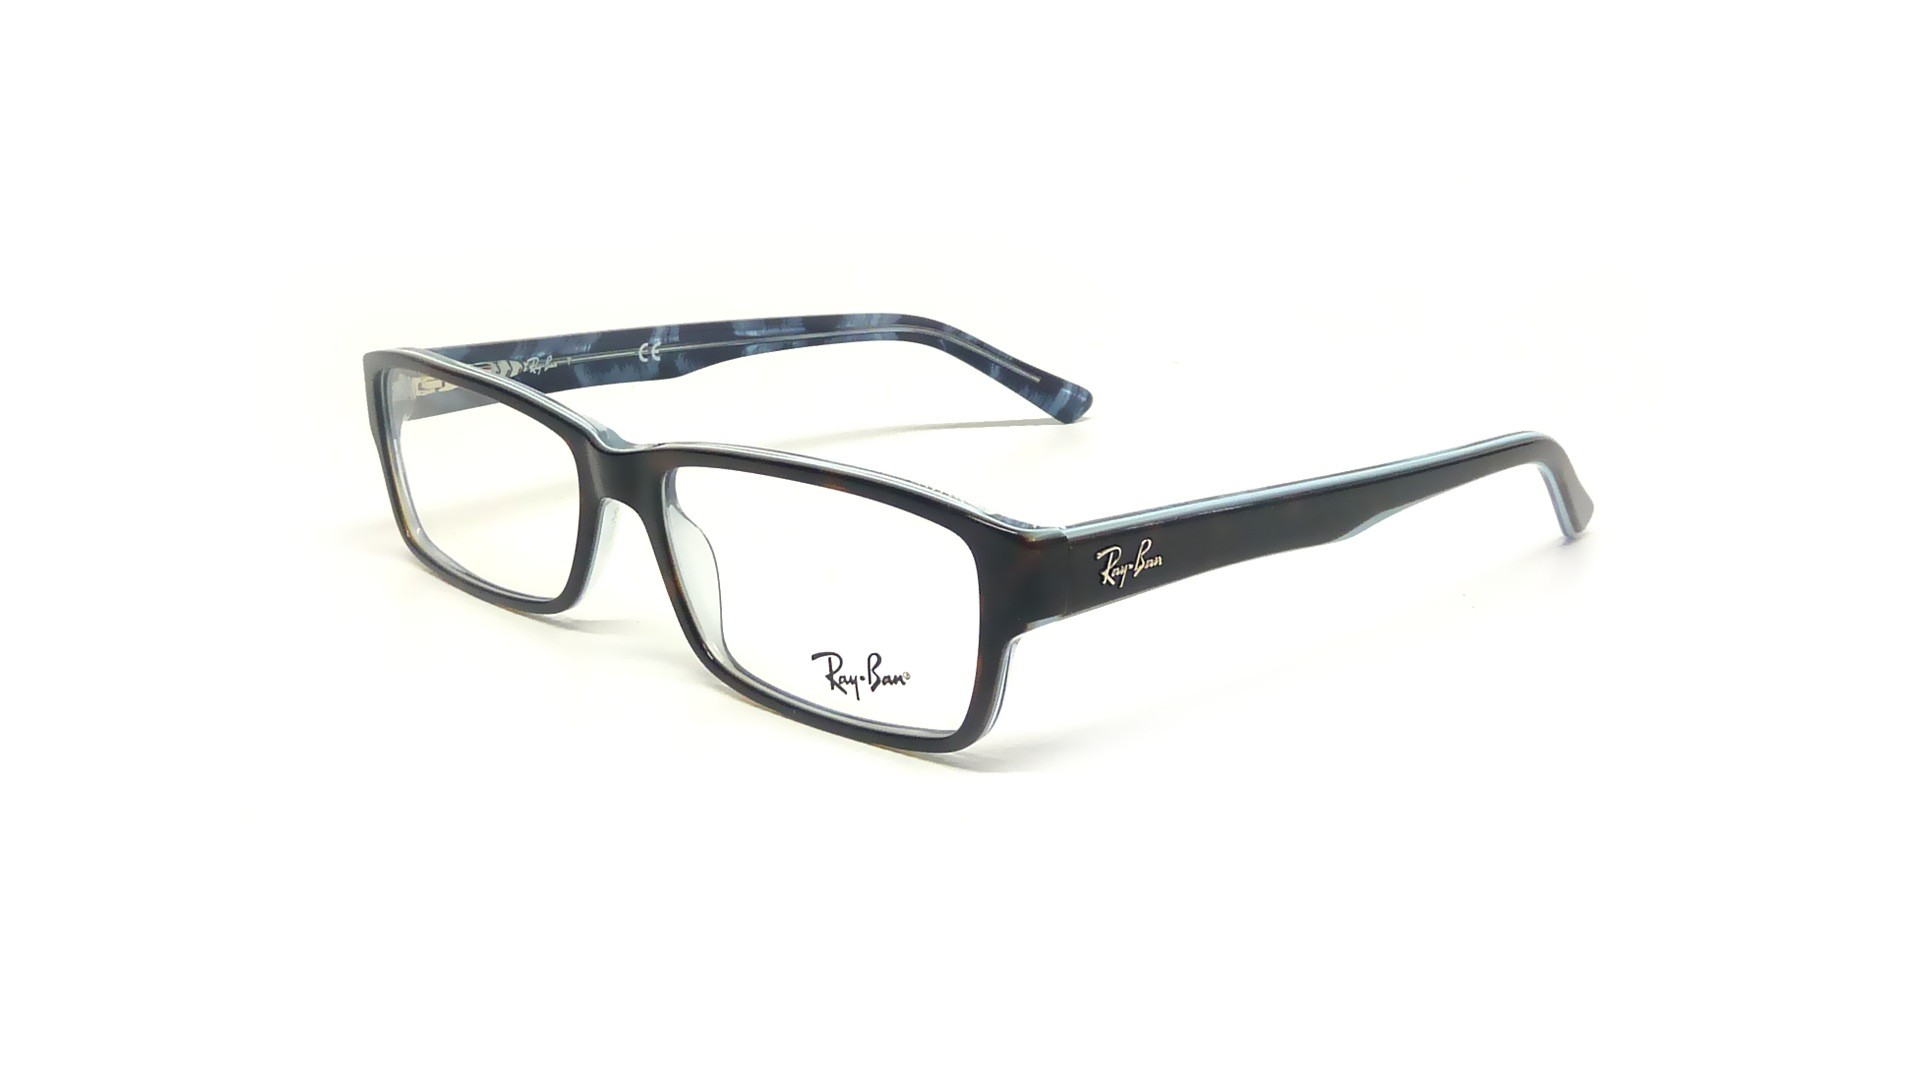 7fb25723241 Ray Ban Rb 5169 Frames For Glasses « Heritage Malta